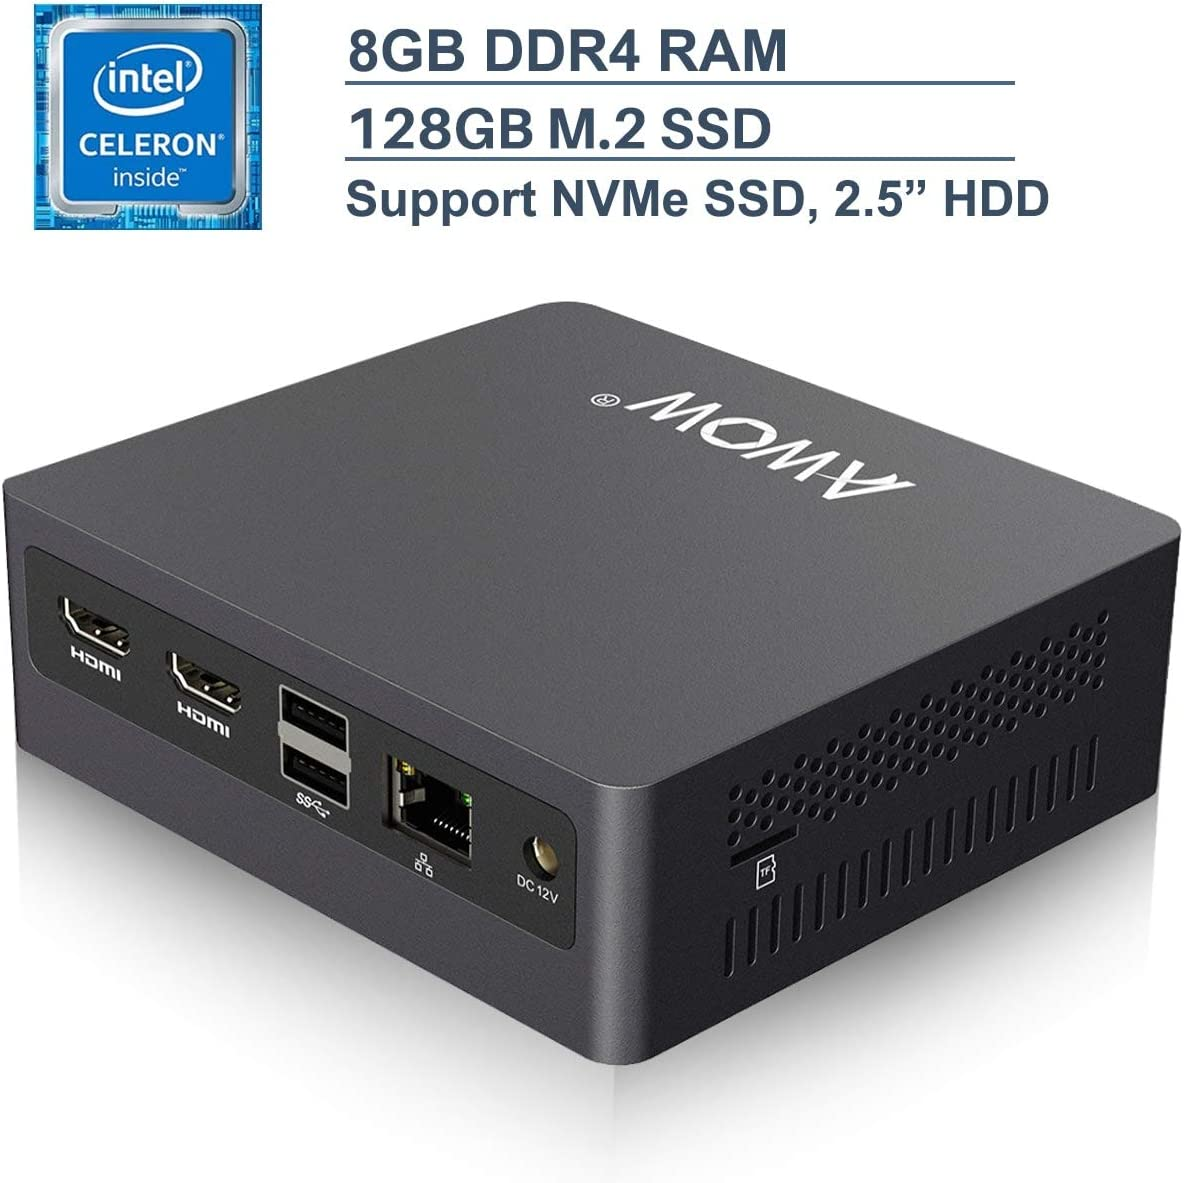 Mini PC Windows 10 AWOW Mini Desktop Computer Intel Celeron N3450, 8GB DDR4 128GB SSD 4K HD, HDMI x2, Dual Band WiFi, USB x4 Gigabit Ethernet, BT 4.2 AL34 Micro PC